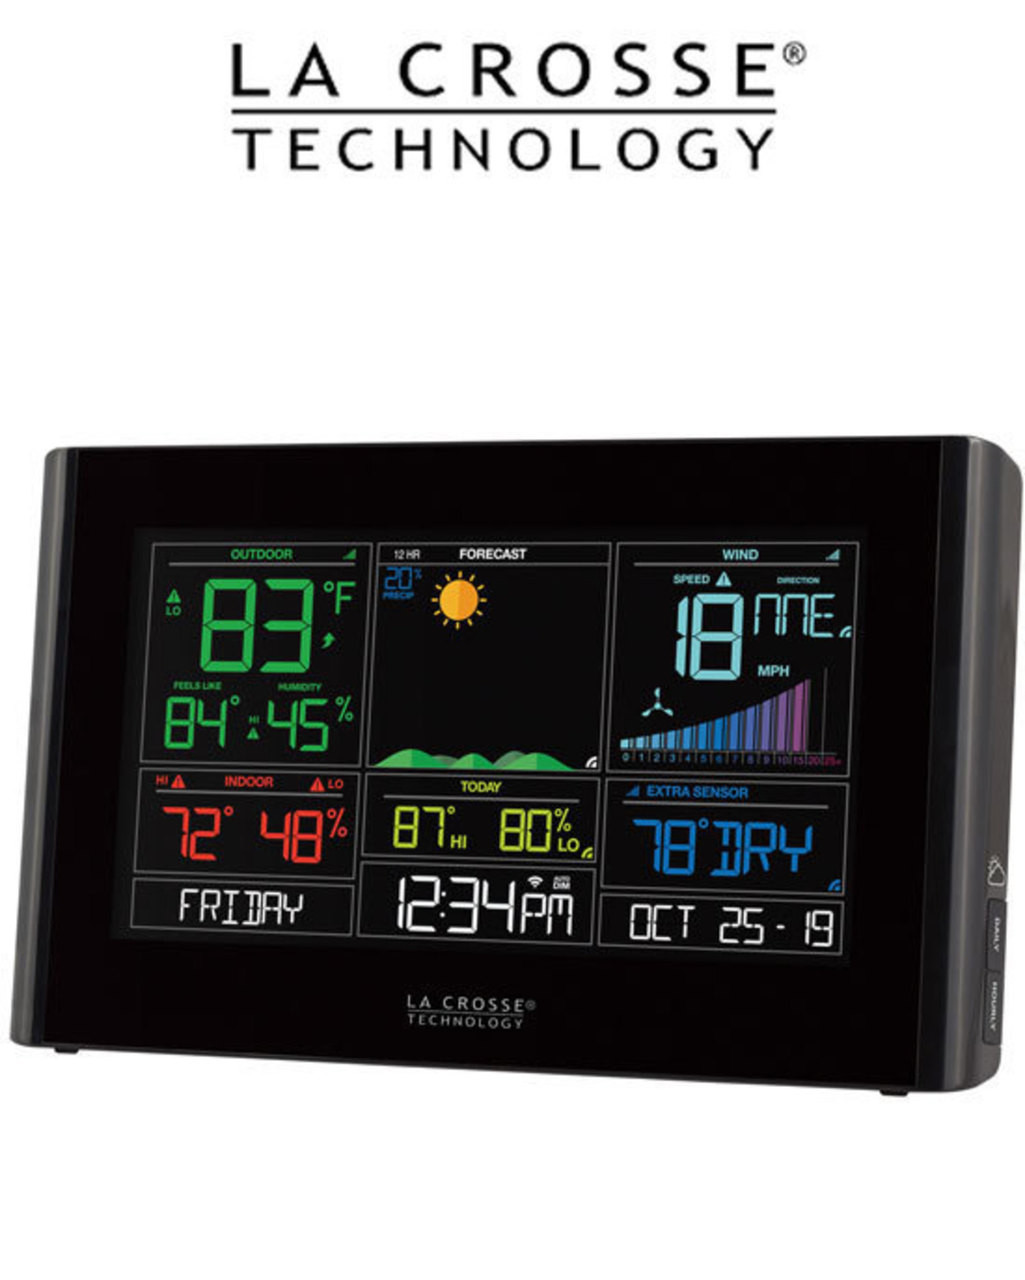 La Crosse S82950 WiFi Wind Weather Station with AccuWeather Forecast